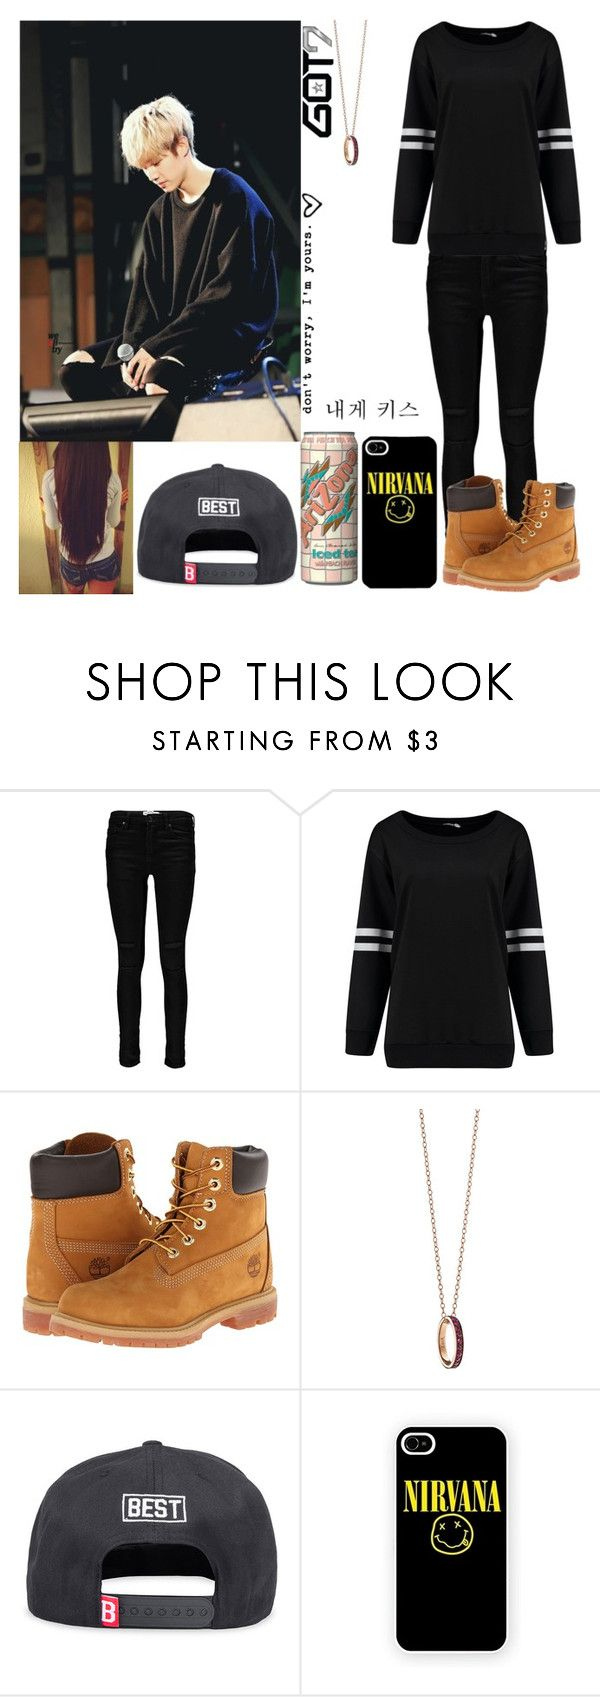 """#390: GOT7 - See The Light (Mark)"" by exoo ❤ liked on Polyvore featuring Boohoo, Timberland, Monica Rich Kosann and Best"